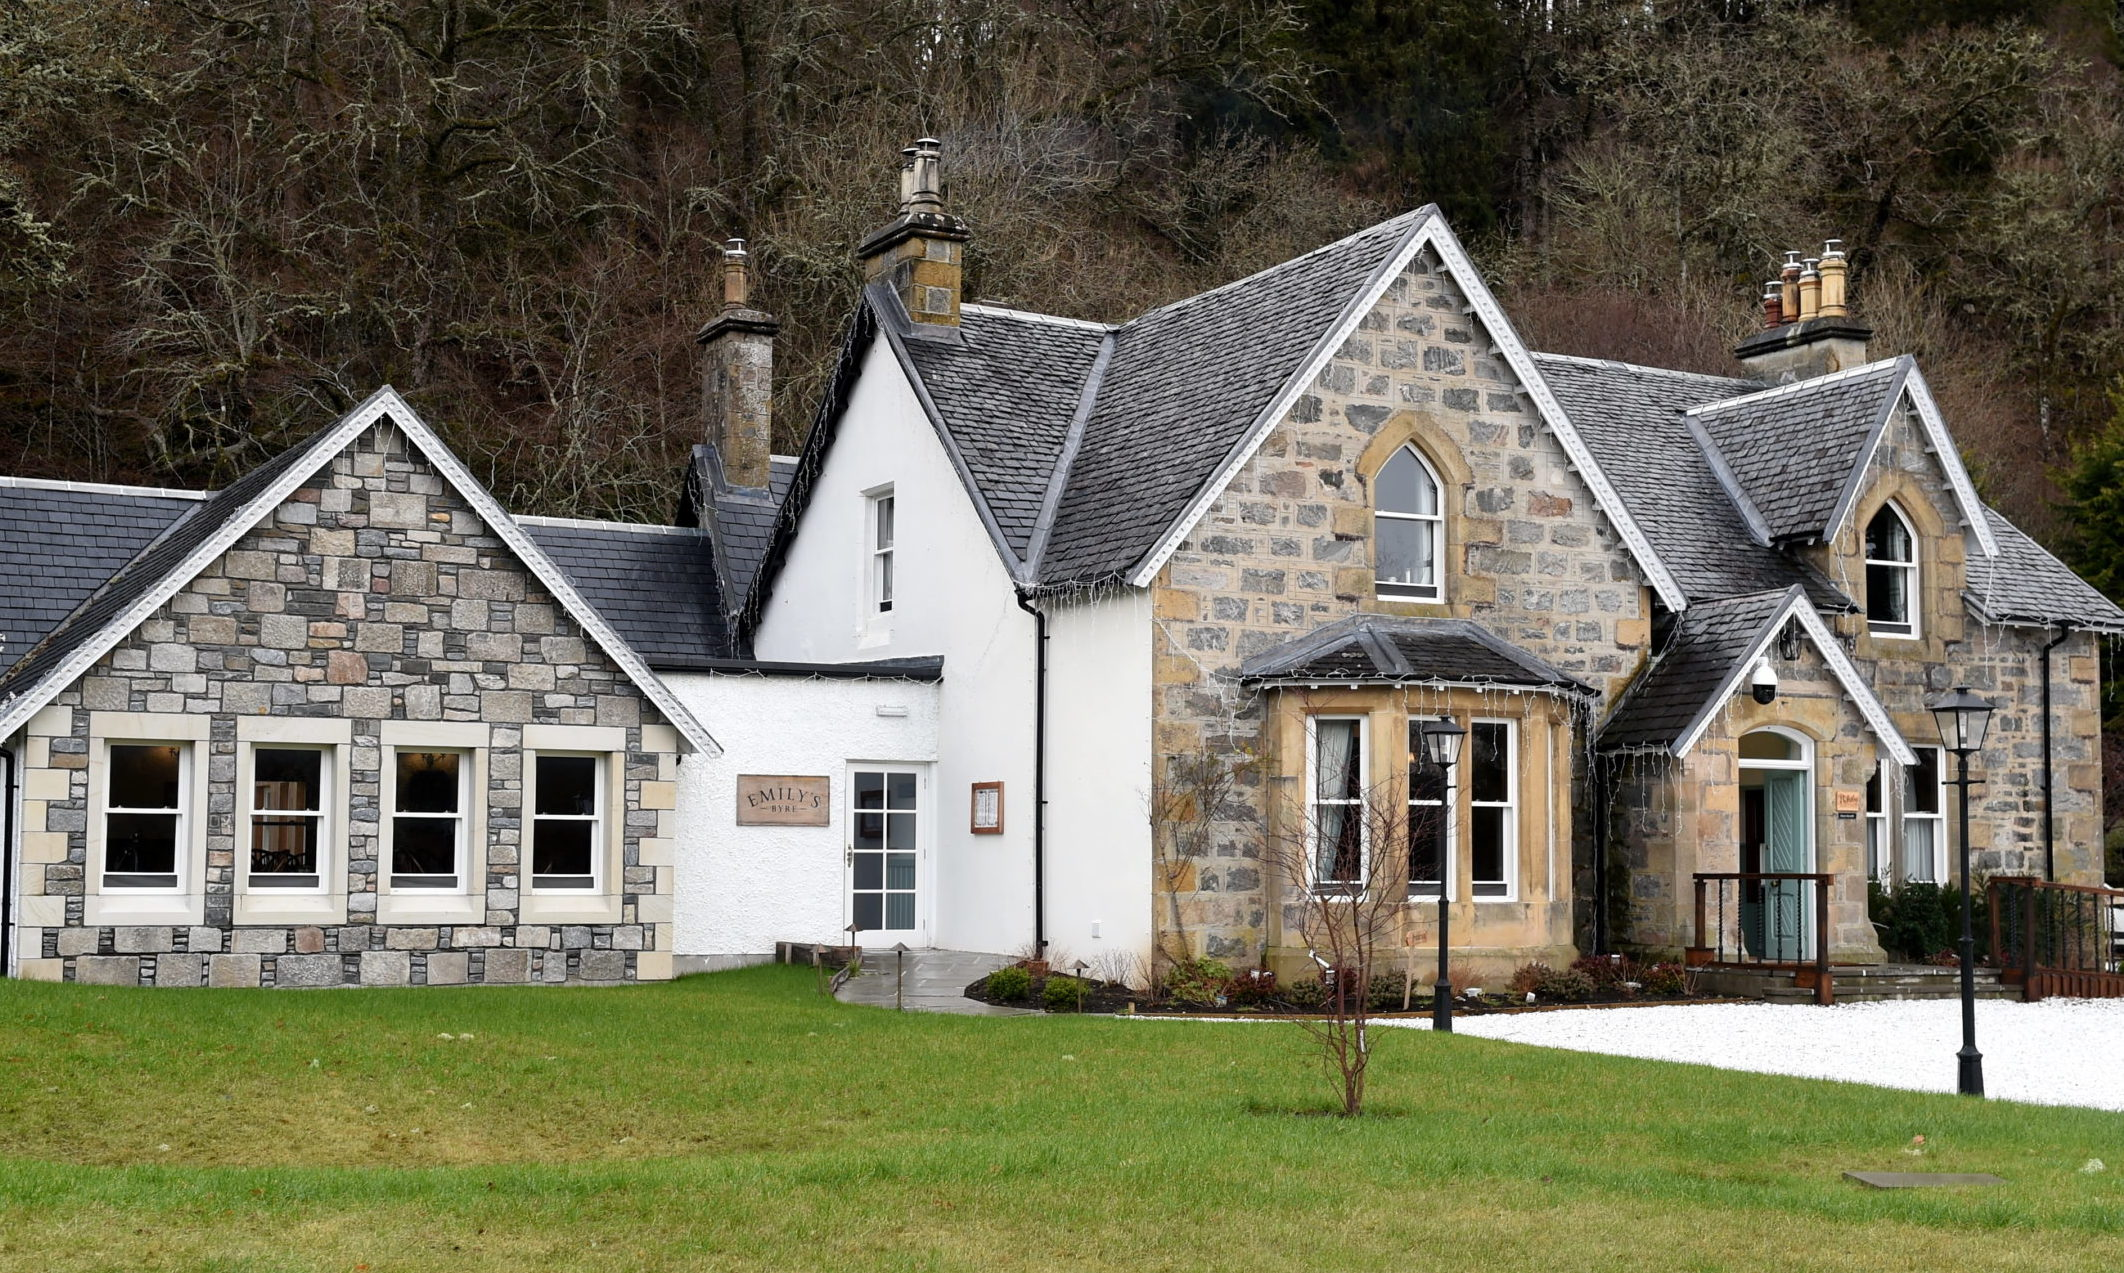 Emily's Byre at Rokeby Manor, Invergarry. Picture by Sandy McCook